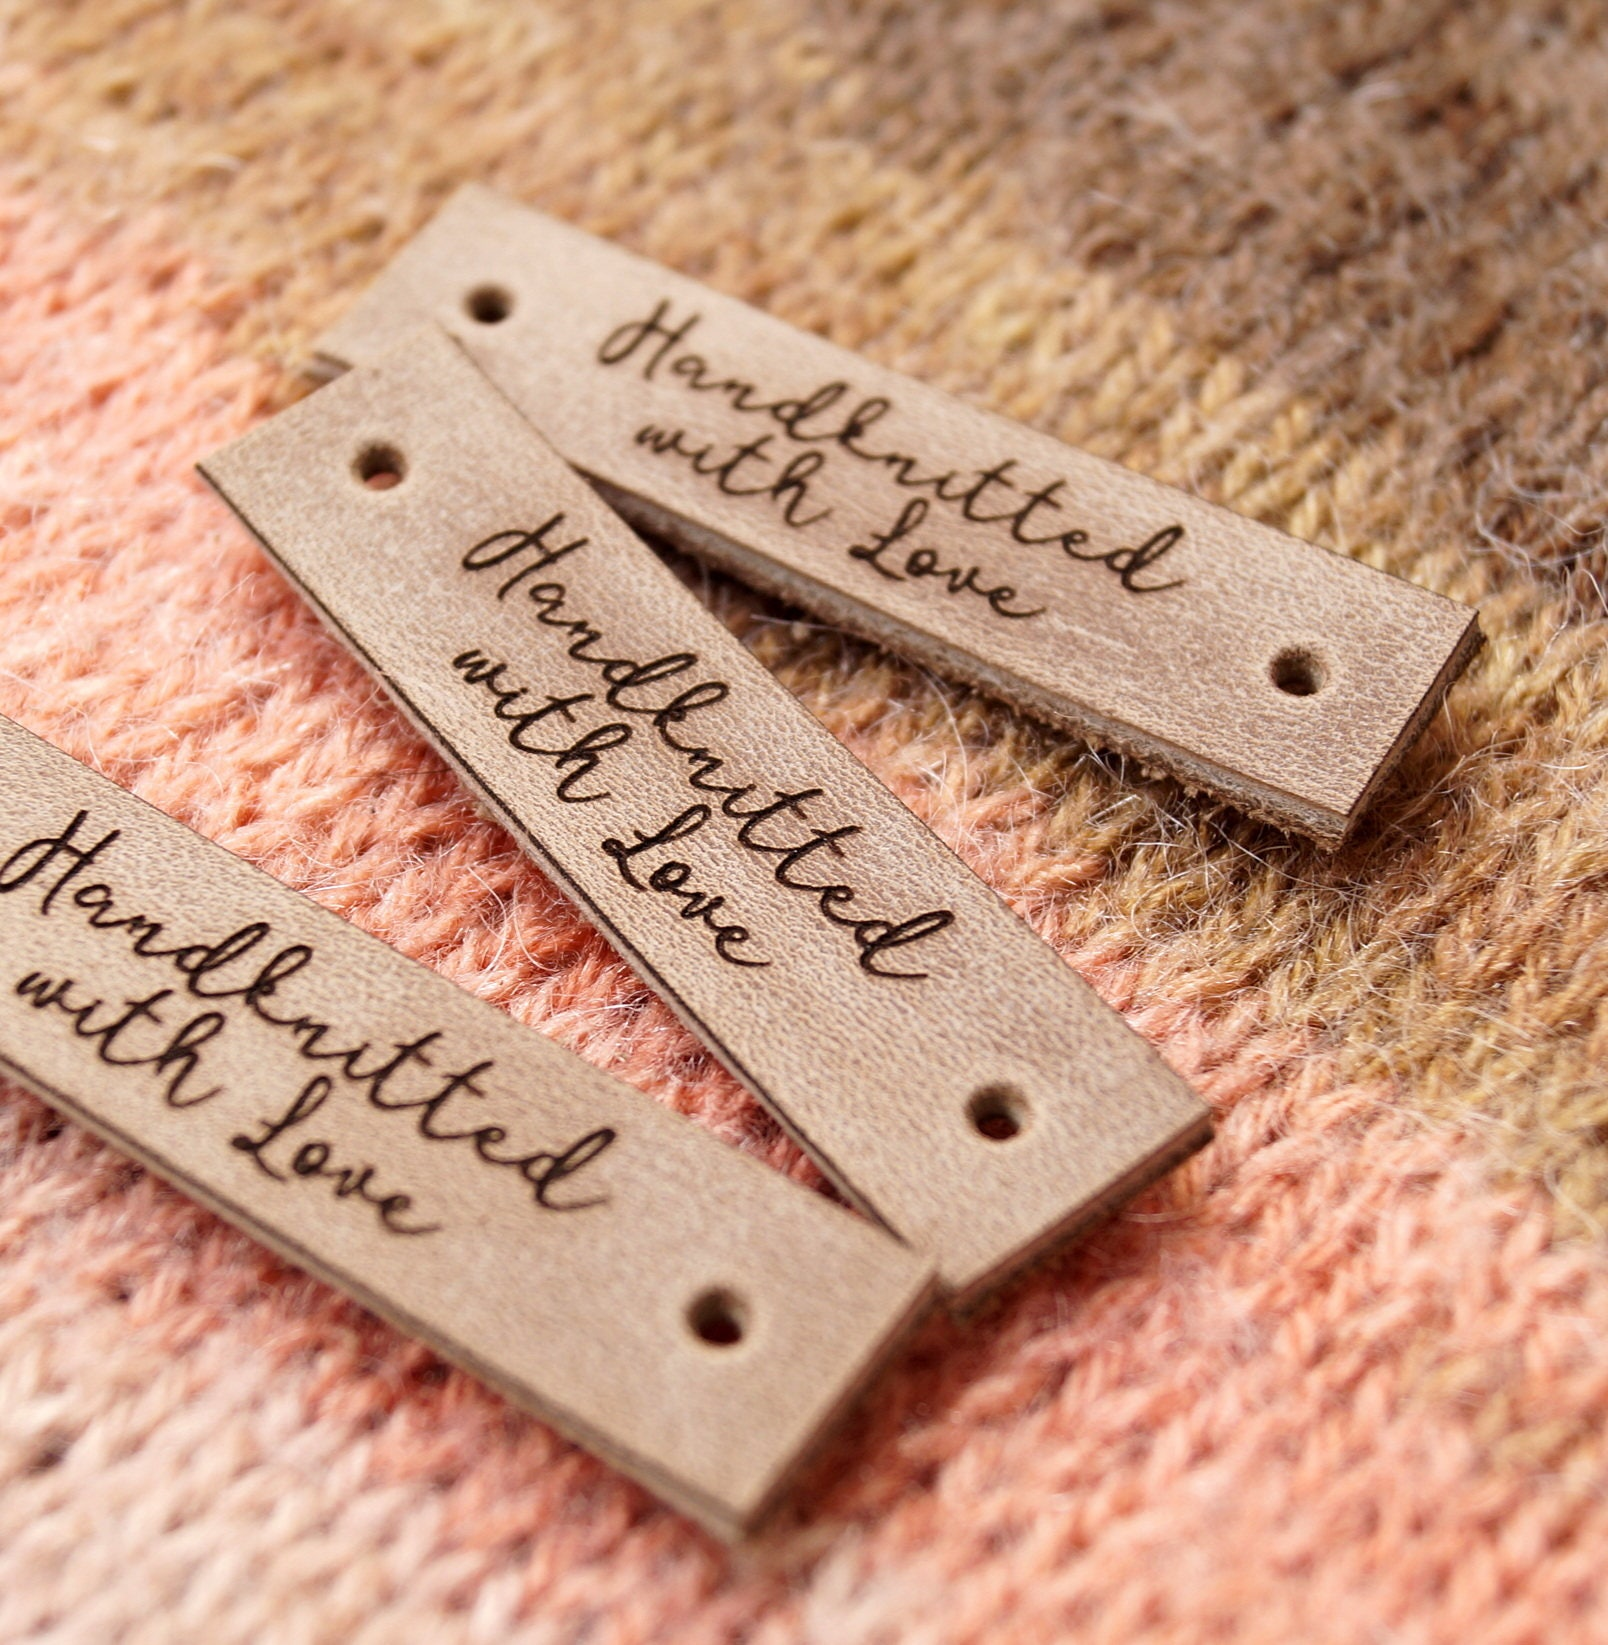 This is a photo of Juicy Personalised Knitting Labels Uk